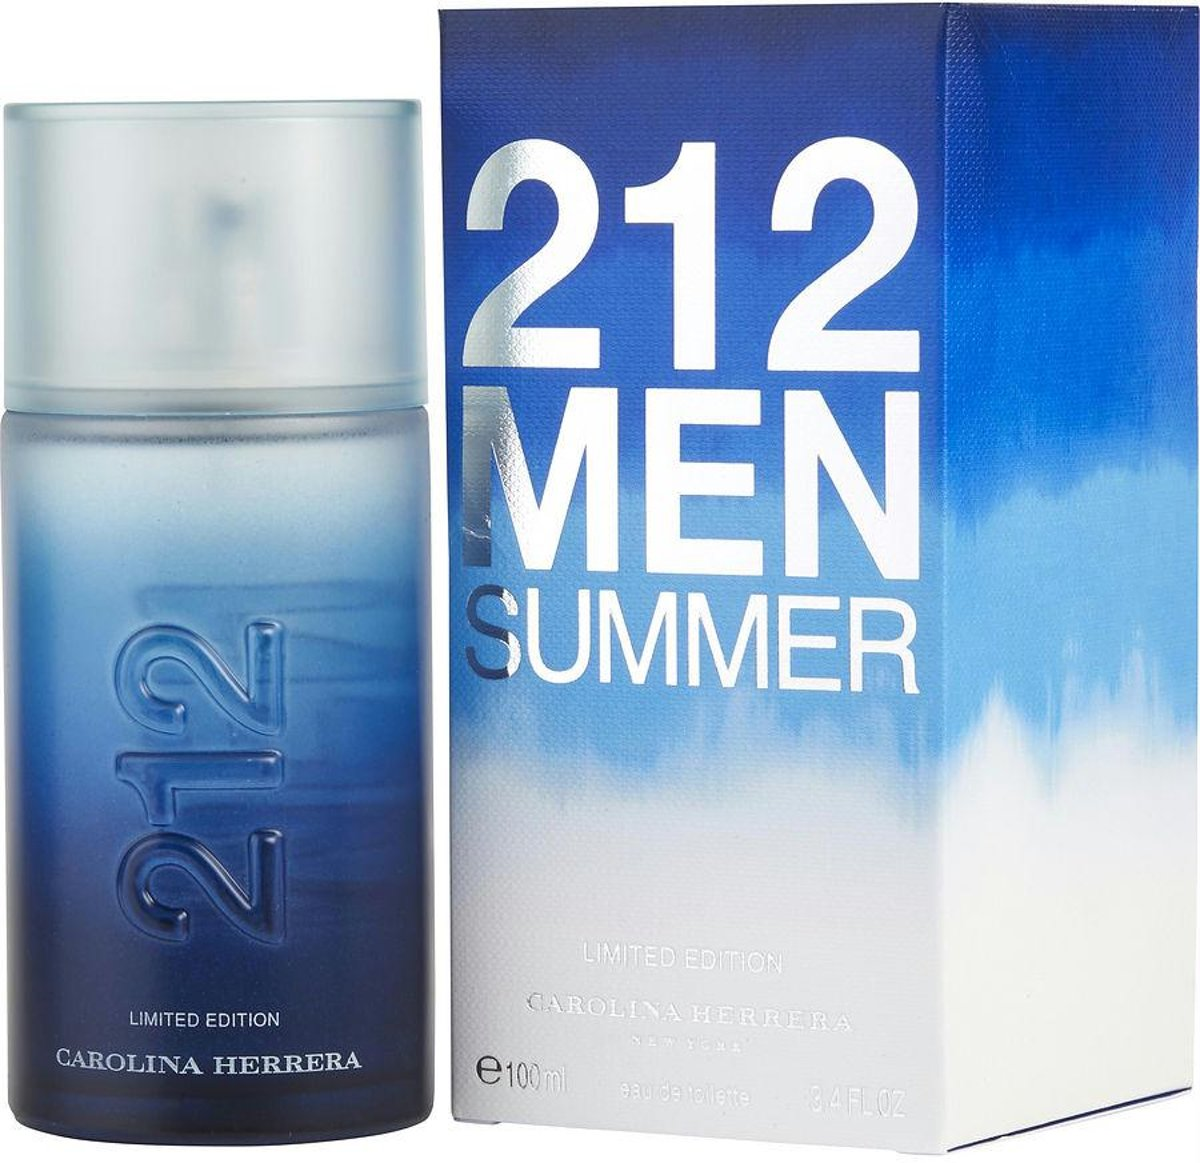 Carolina Herrera 212 Men Summer 2013 Limited Edition - 100 ml - Eau de toilette